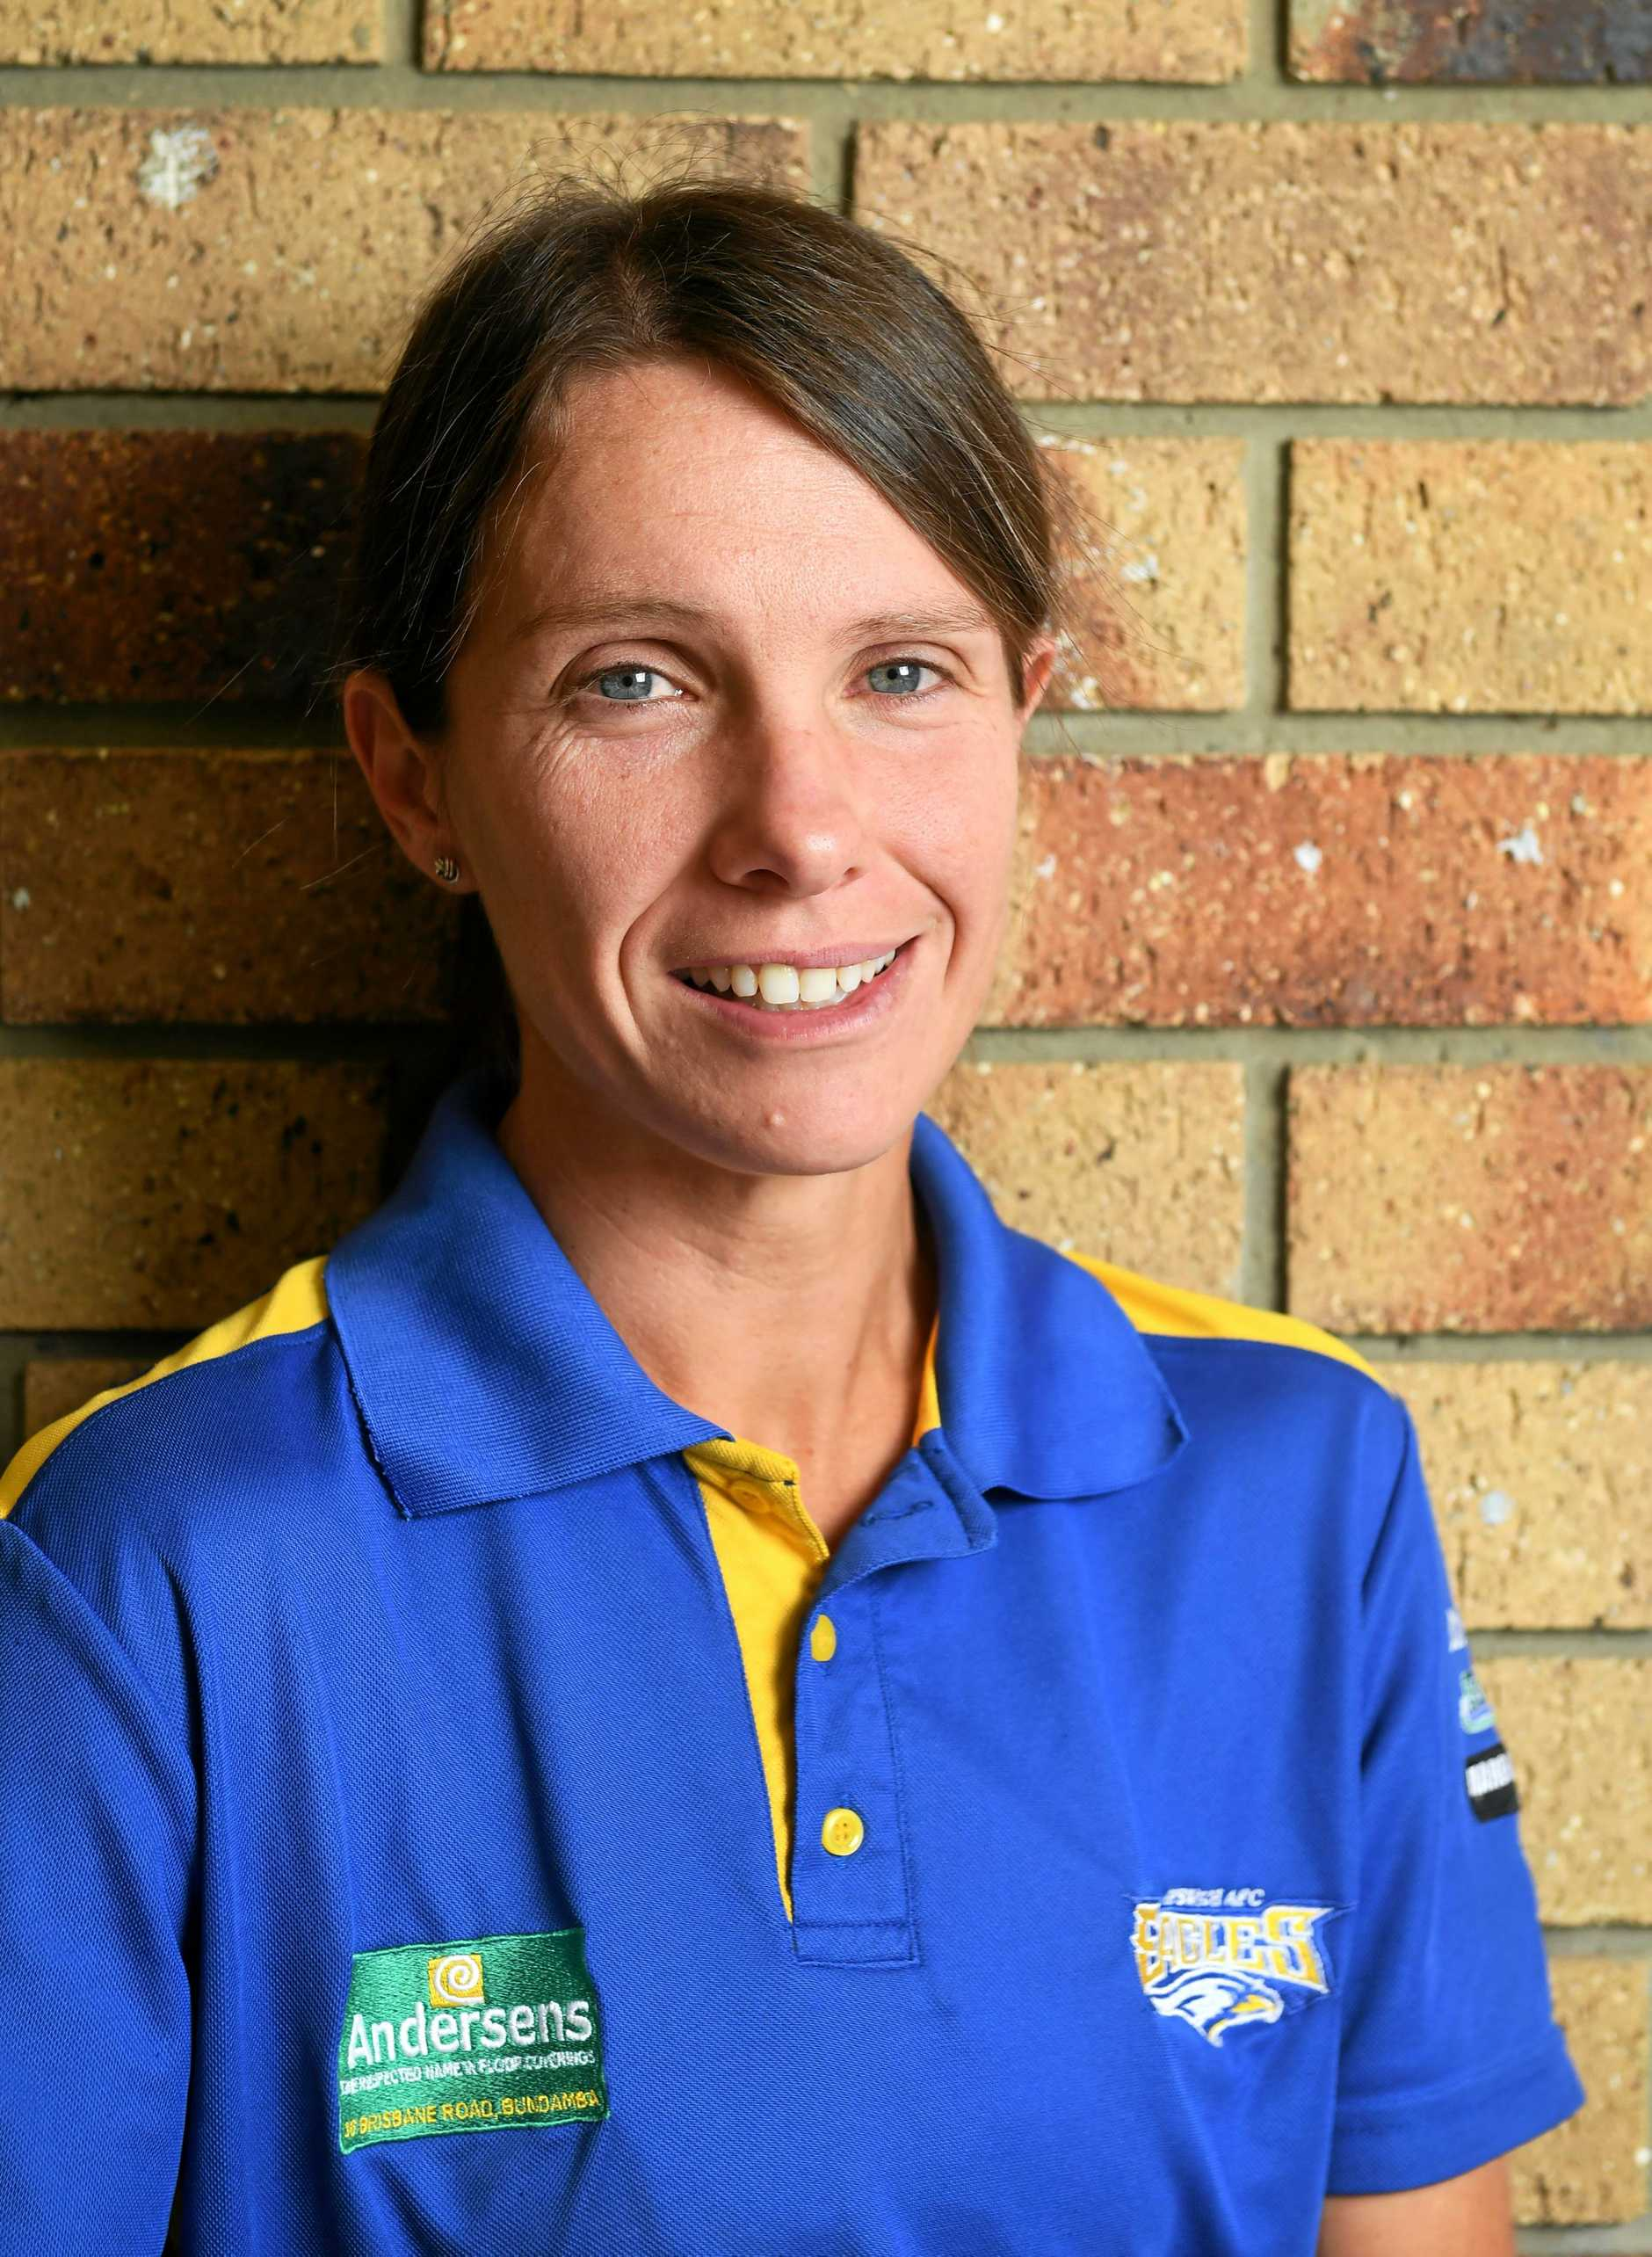 Ipswich Eagles volunteer Anne O'Donnell is a finalist in the City of Ipswich Sports awards.